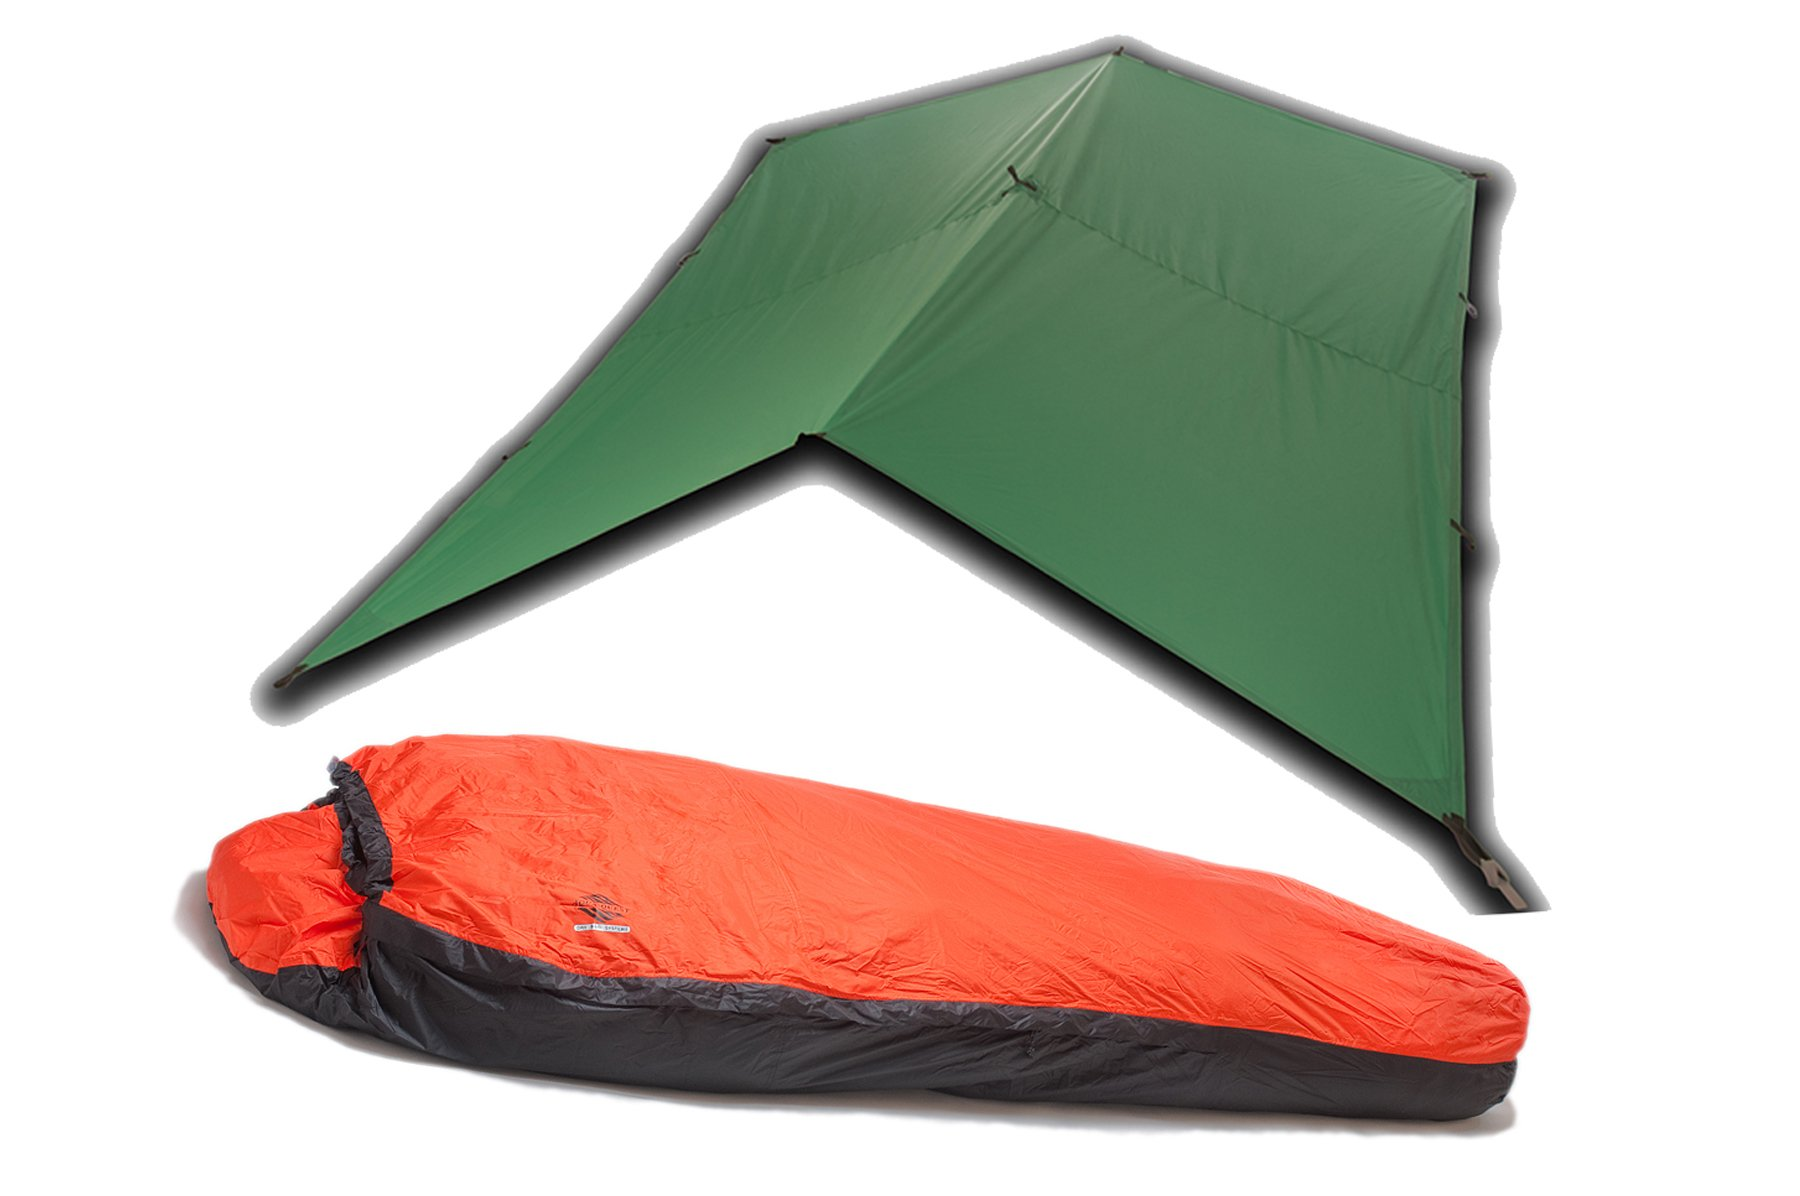 Aqua-Quest The Mummy Combo 2-pc Camping System - 100% Waterproof - 13 x 10 ft Large Guide Tarp - Green